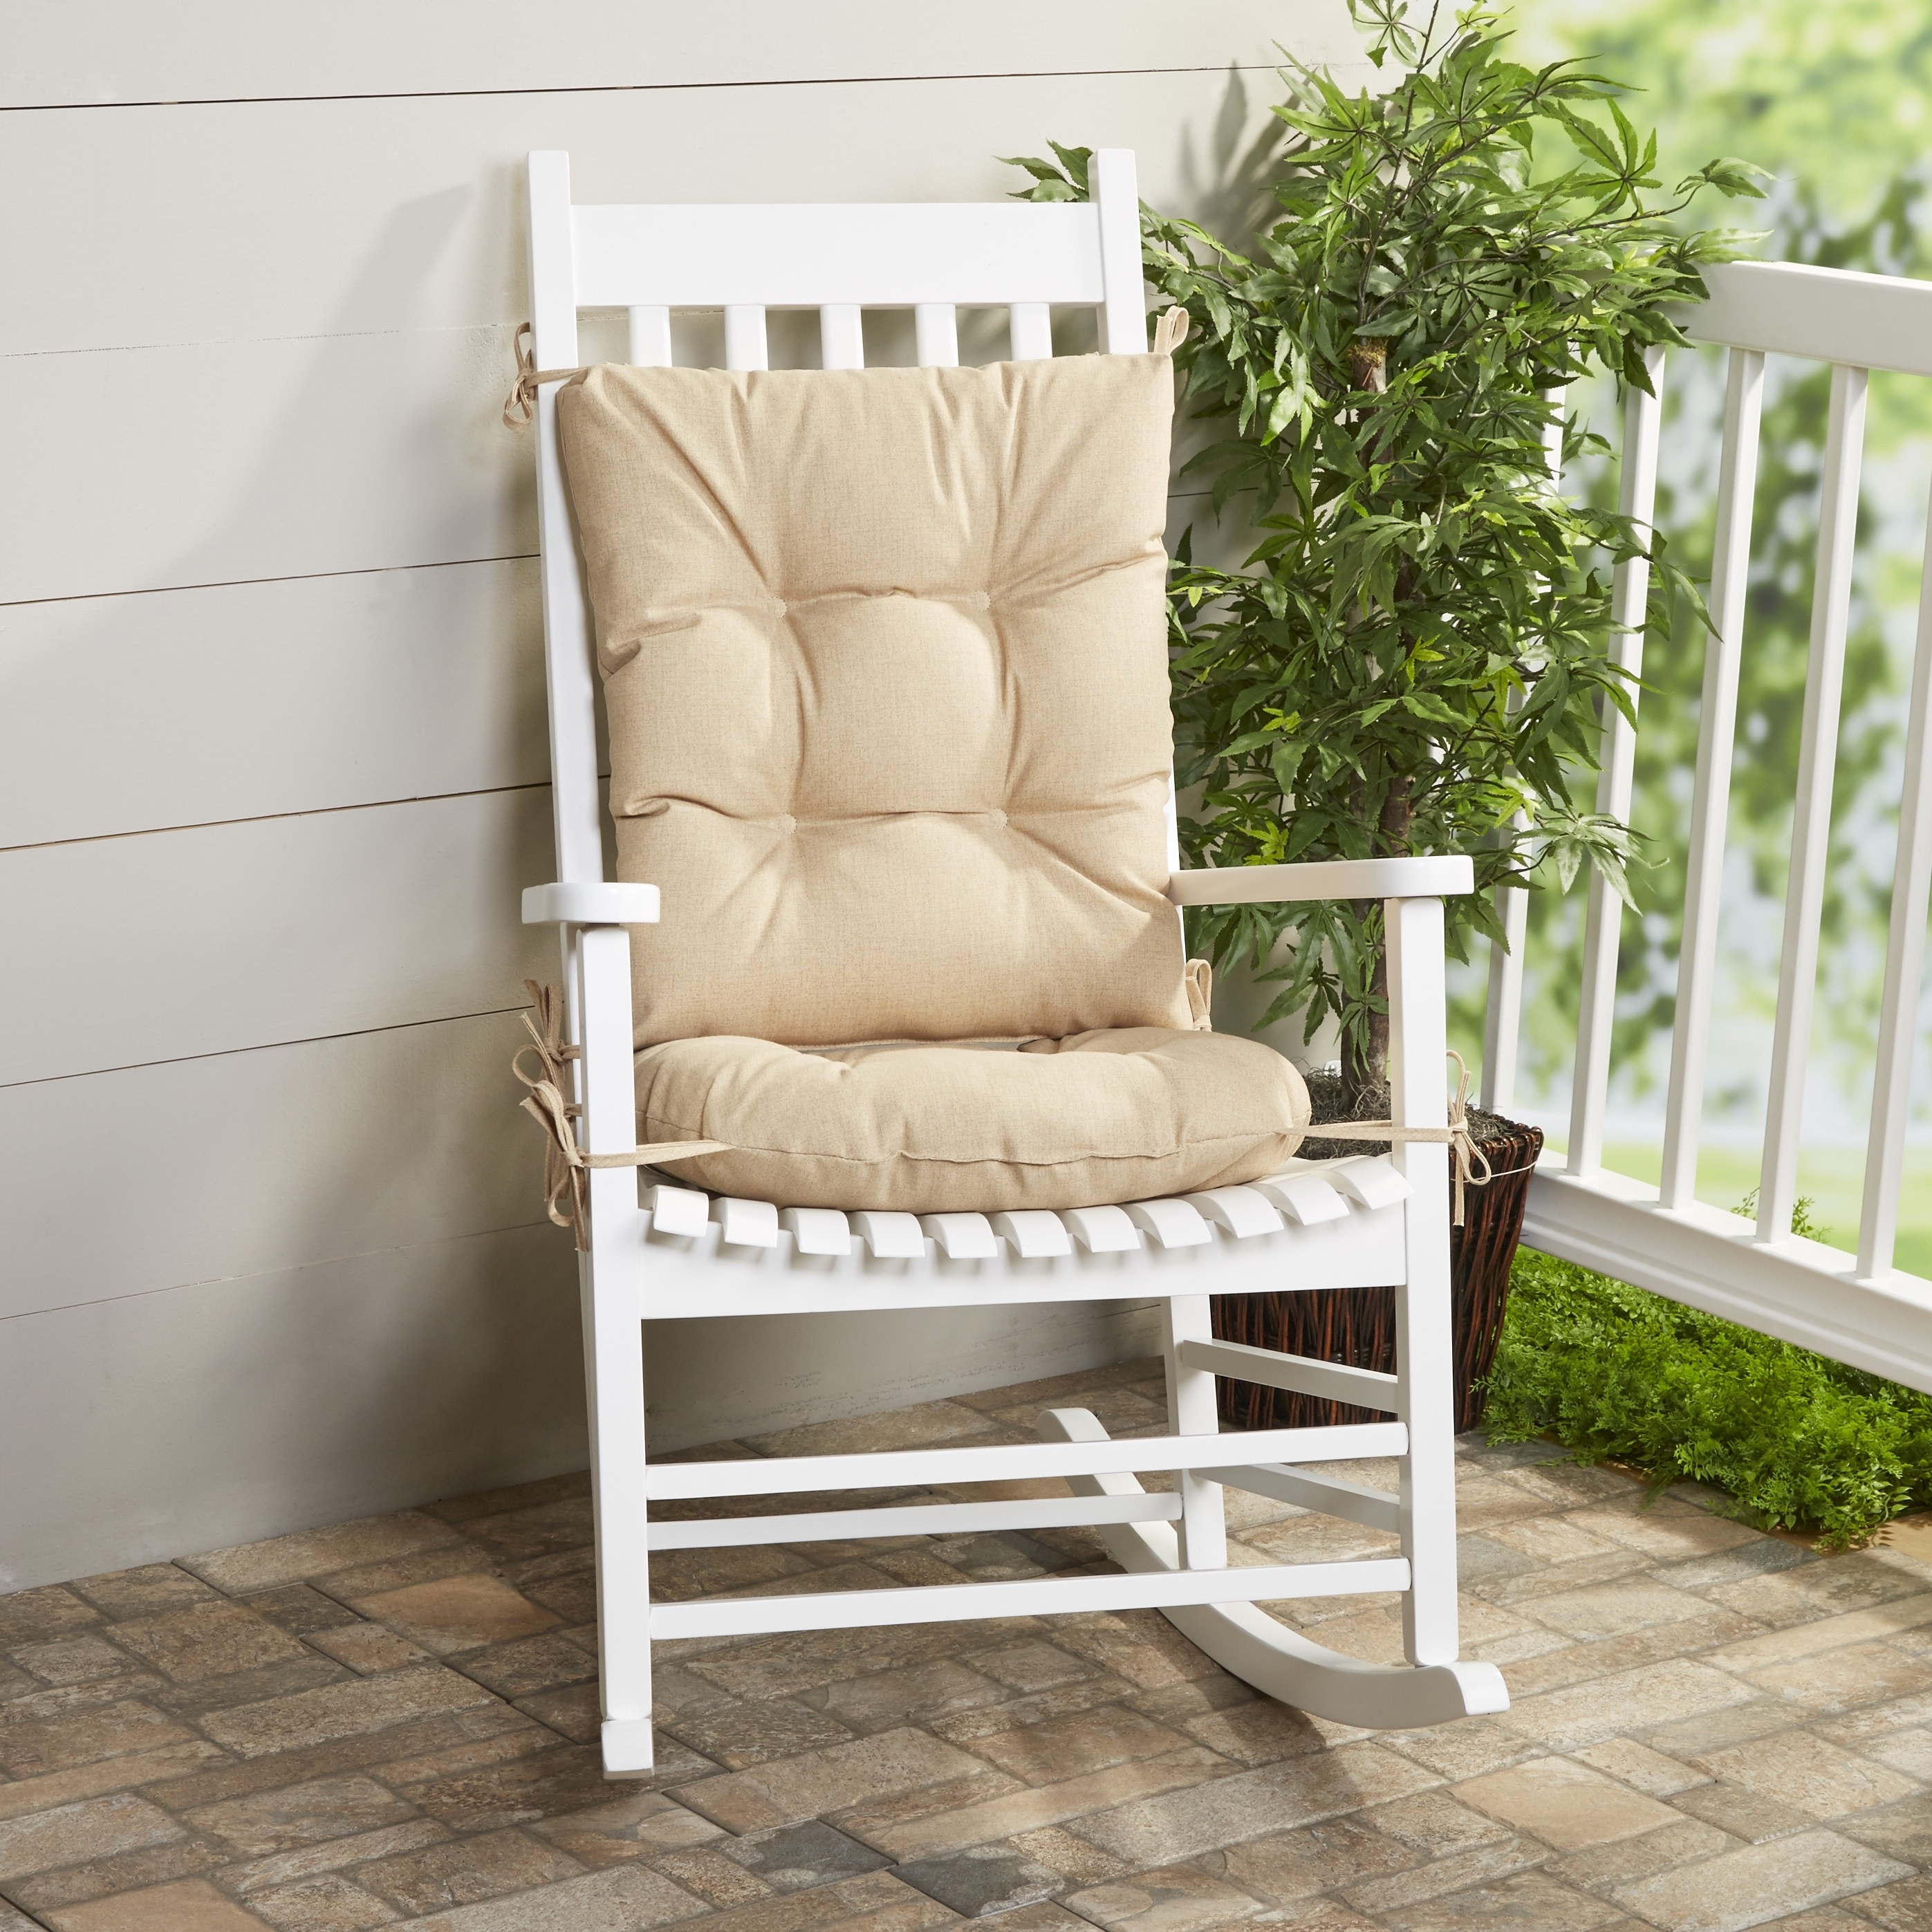 Rocking Chairs At Wayfair Regarding Preferred Furniture: White Wooden Wayfair Rocking Chair With Cushion For (View 18 of 20)